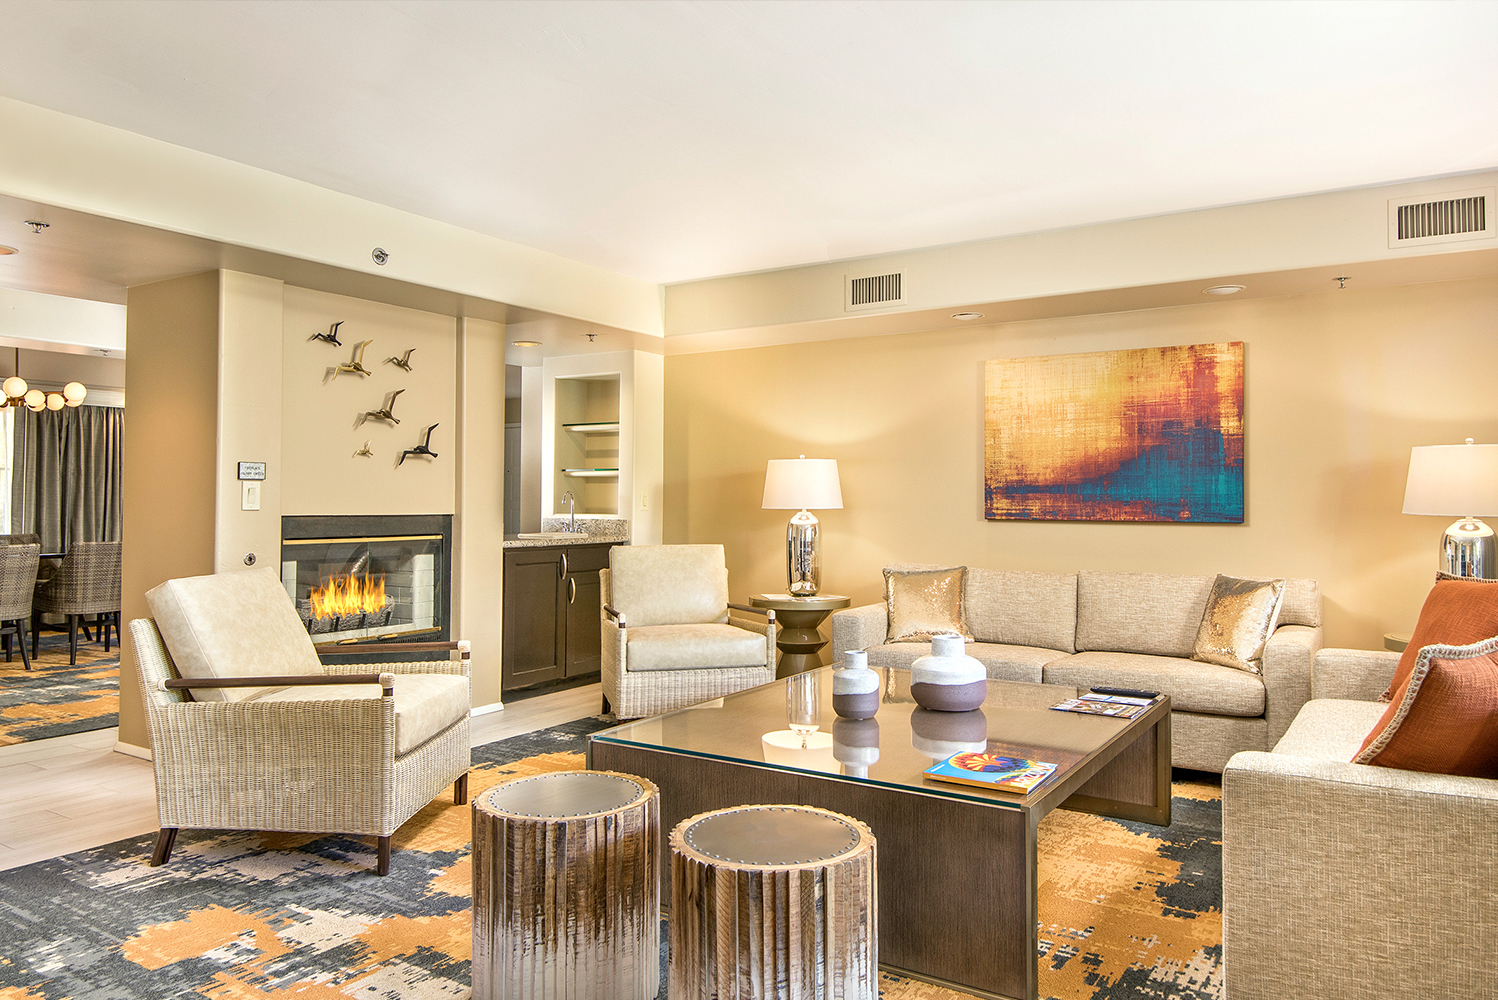 Pointe Hilton Squaw Peak Resort completed an $8.5 million renovation.